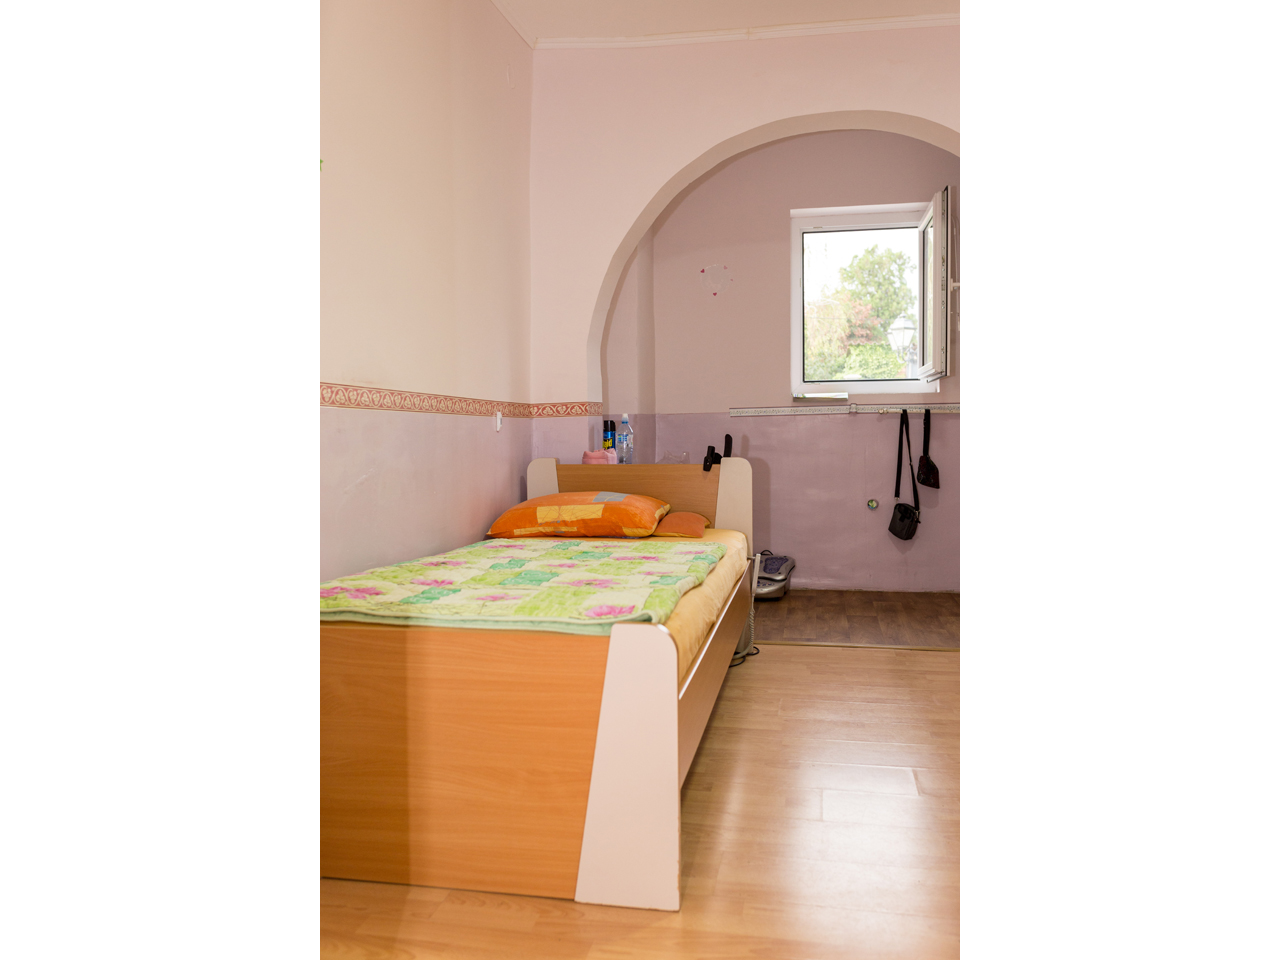 HOME FOR ELDERS AND OLD PEOPLE HOME STARCEVIC Adult care home Zrenjanin - Photo 9